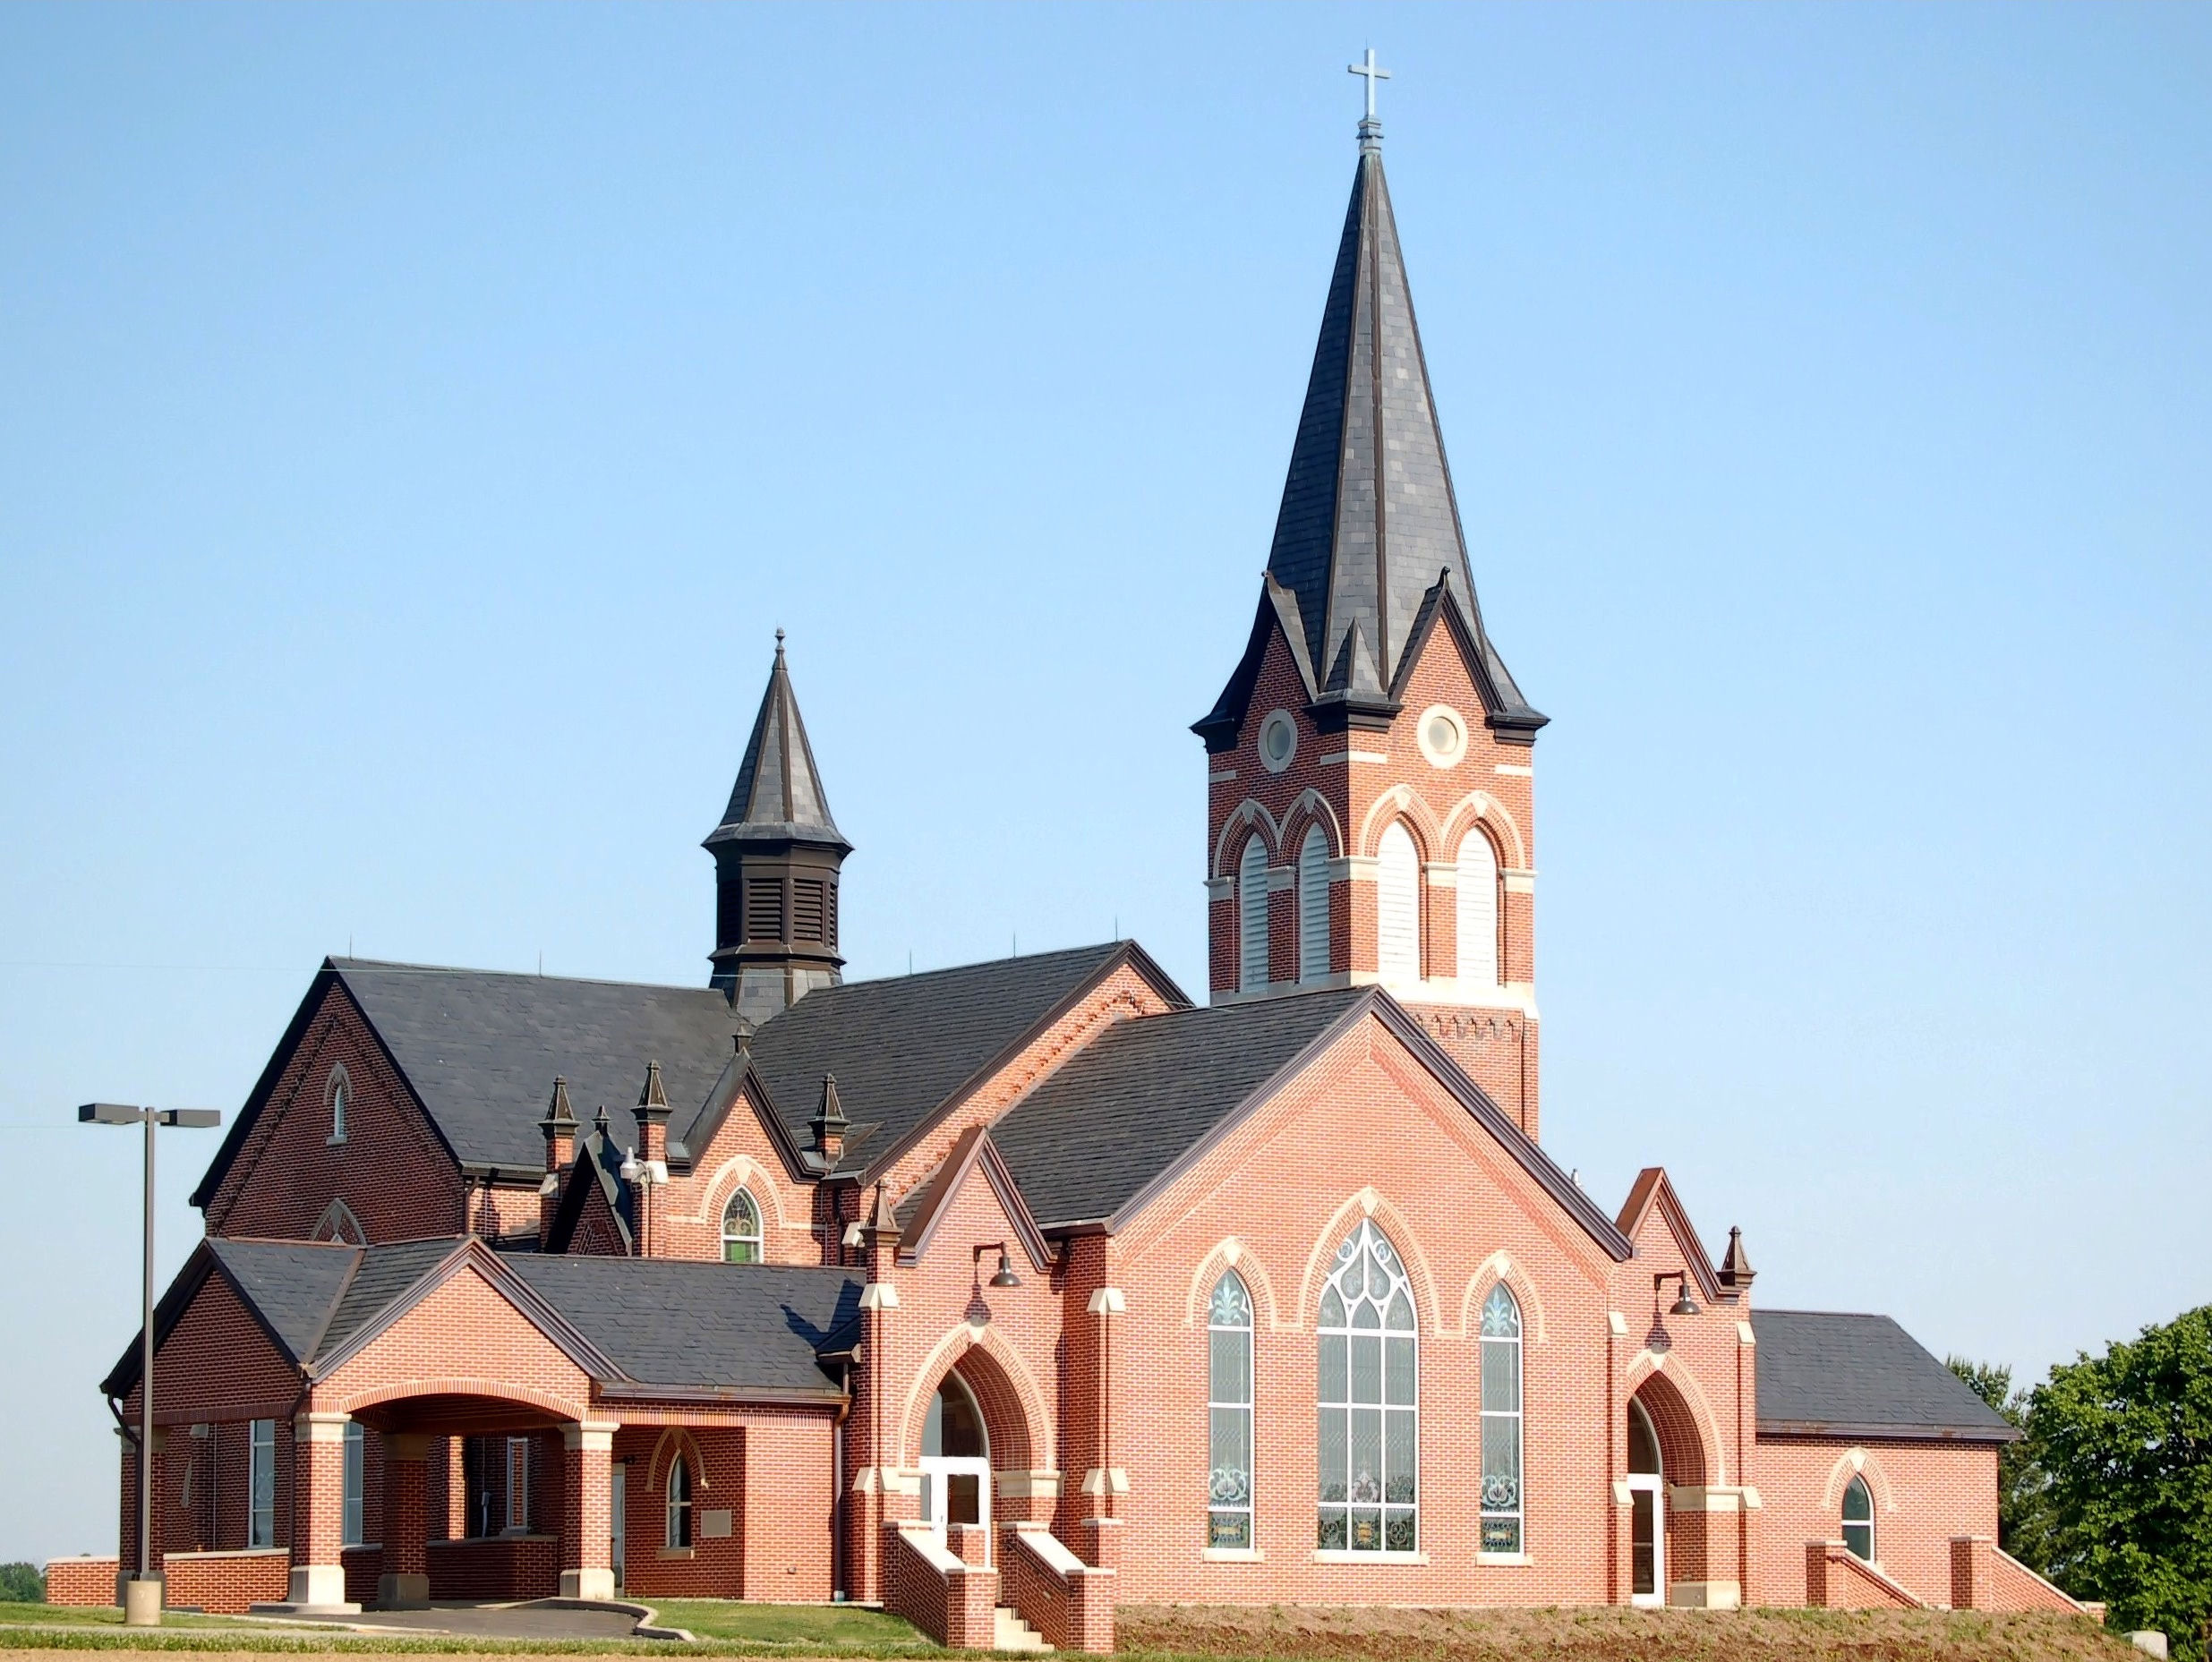 The Apostolic Lutheran Church of America has 57 member churches and close to 9